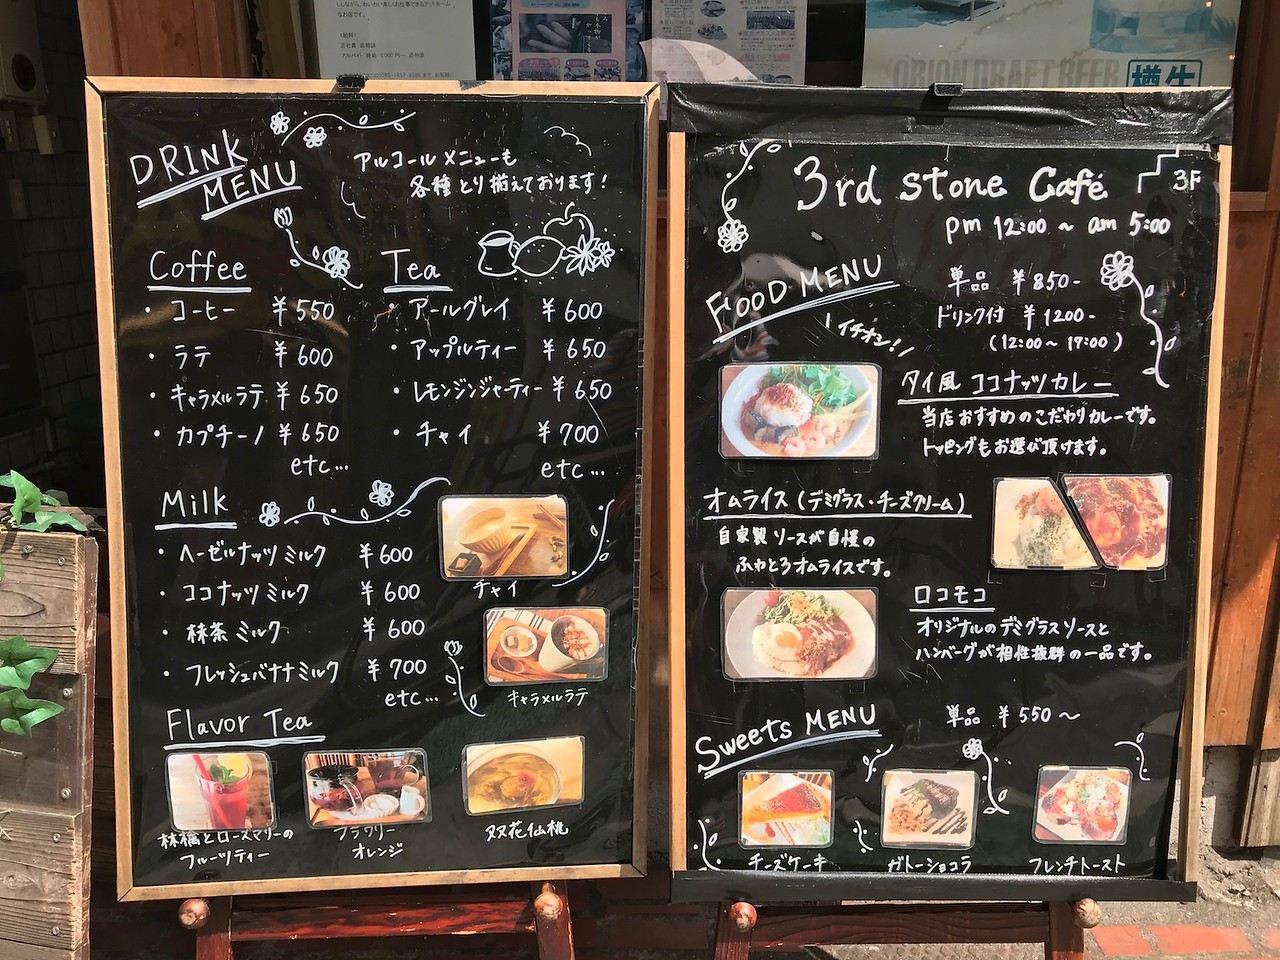 Japanese-only menus become a great deal more approachable with translation apps – up to a point.